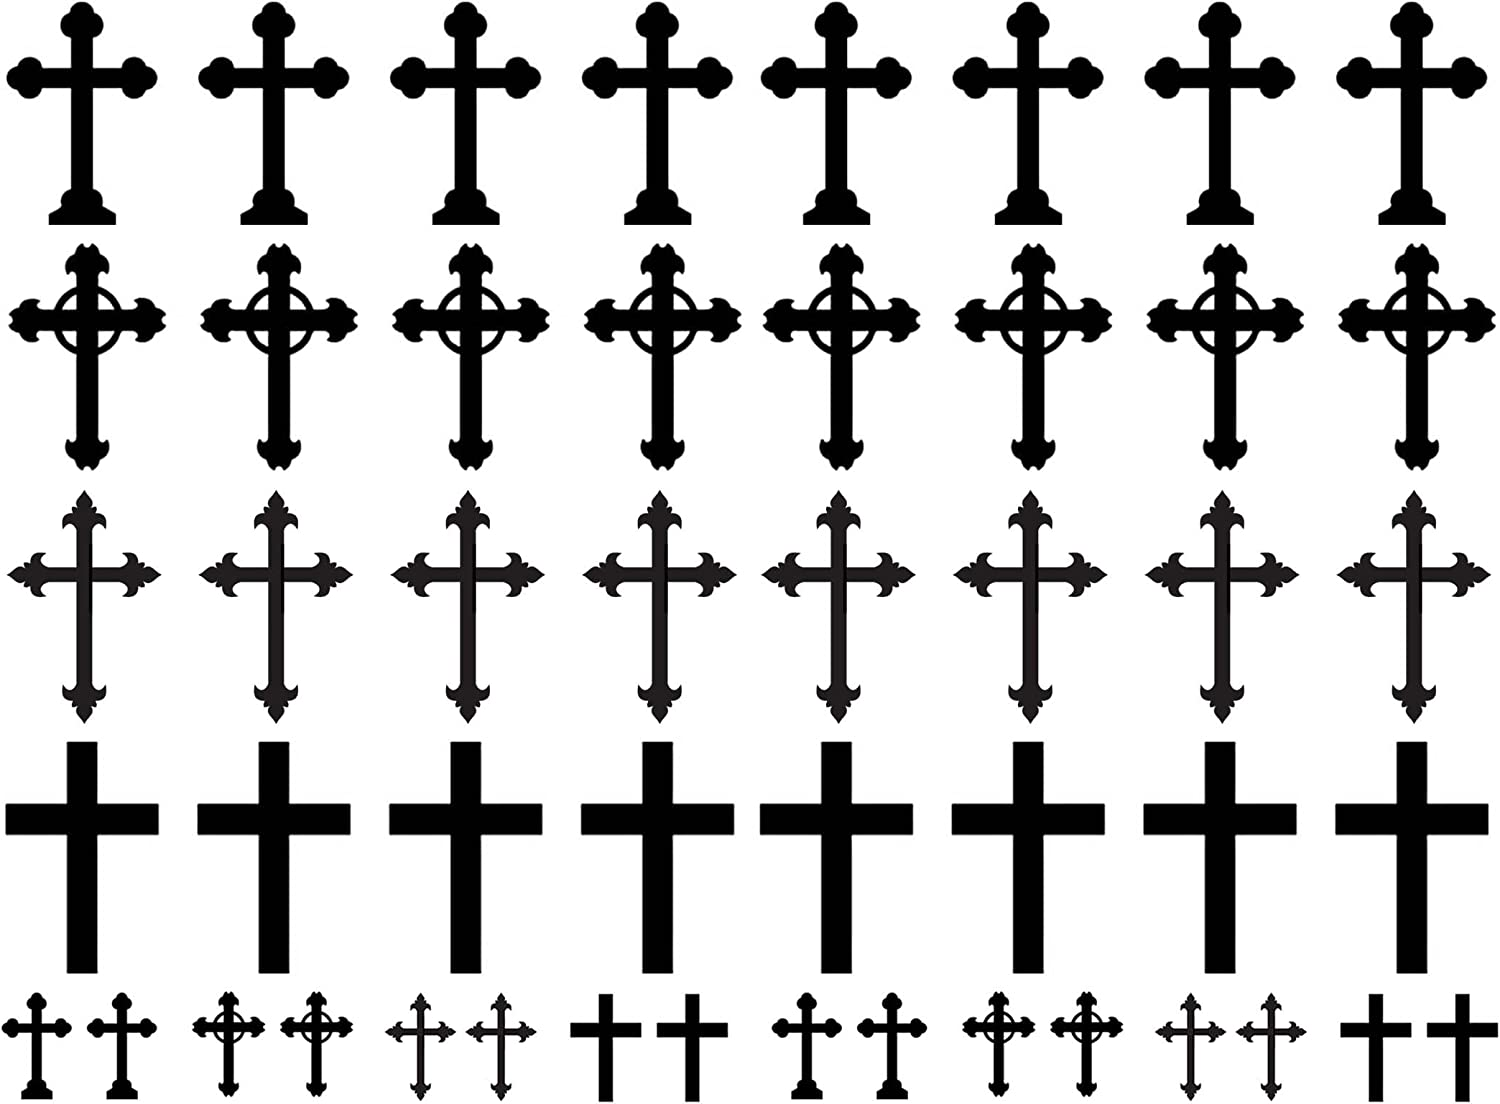 Crosses 1//2 to 1-1//16 Black 14CC430 Fused Glass Decals